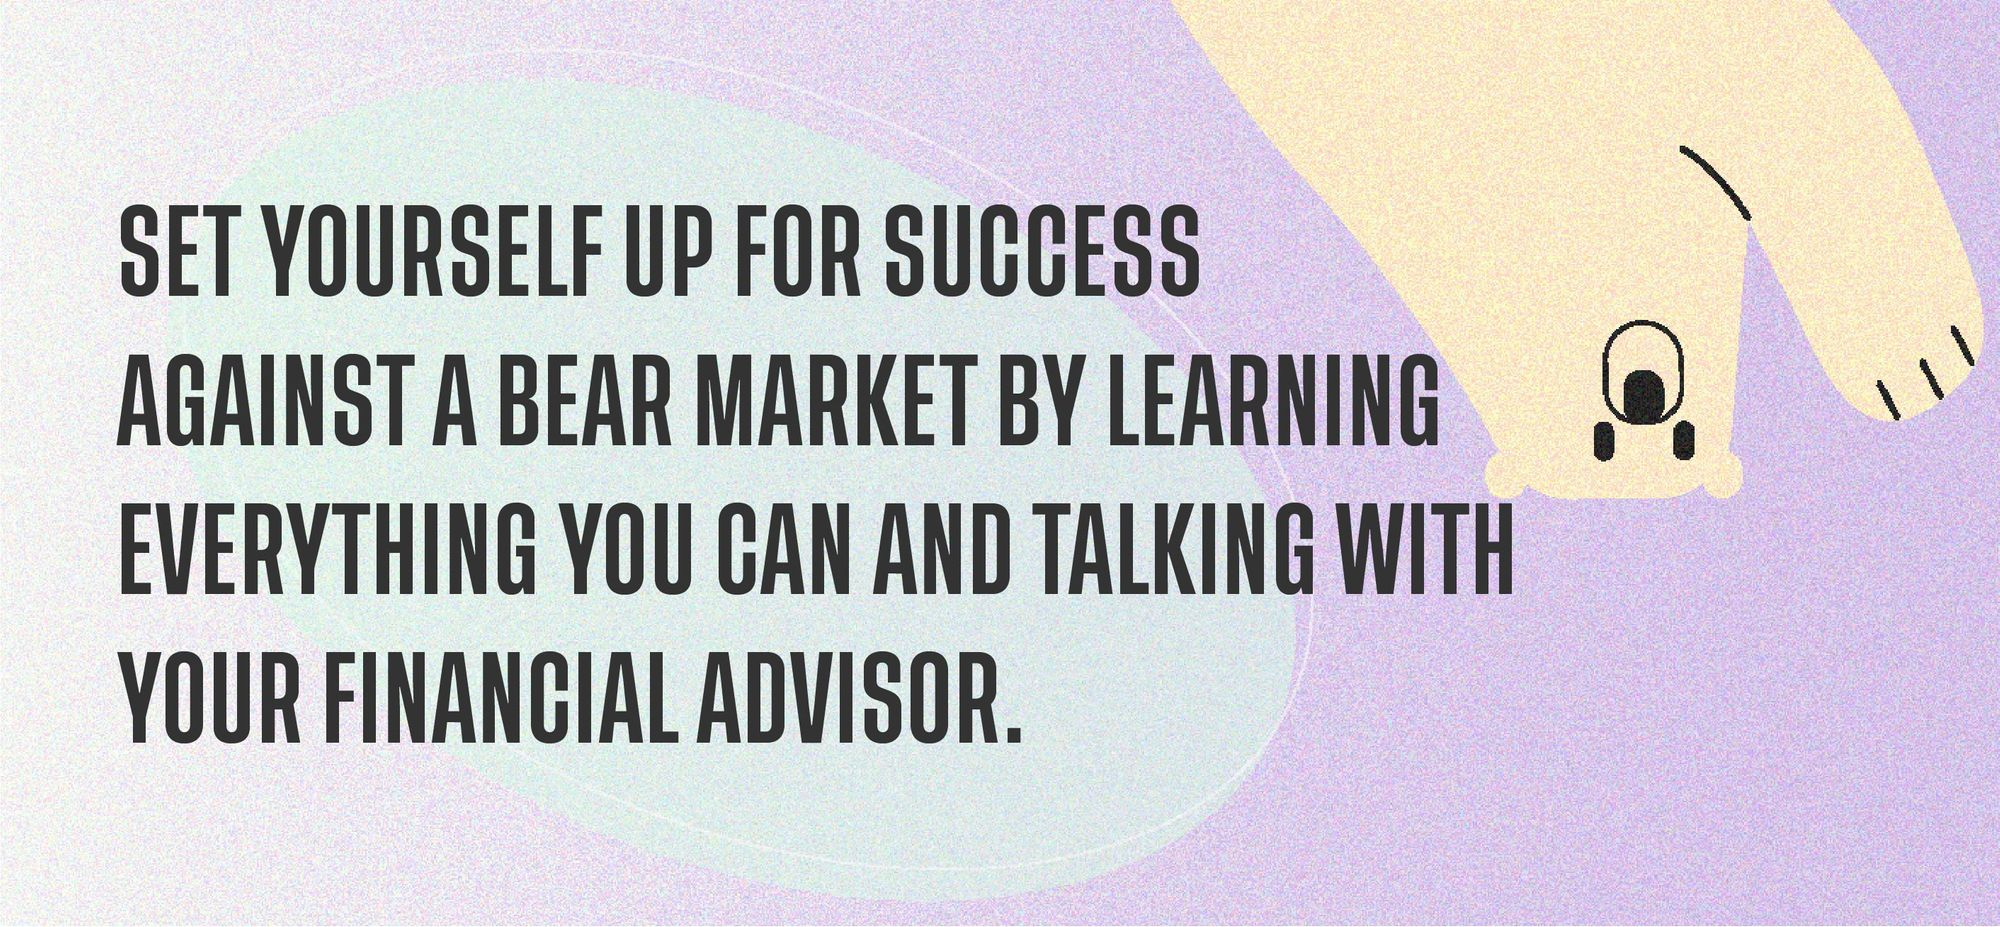 Set yourself up for success against a bear market by learning everything you can and talking with your financial advisor